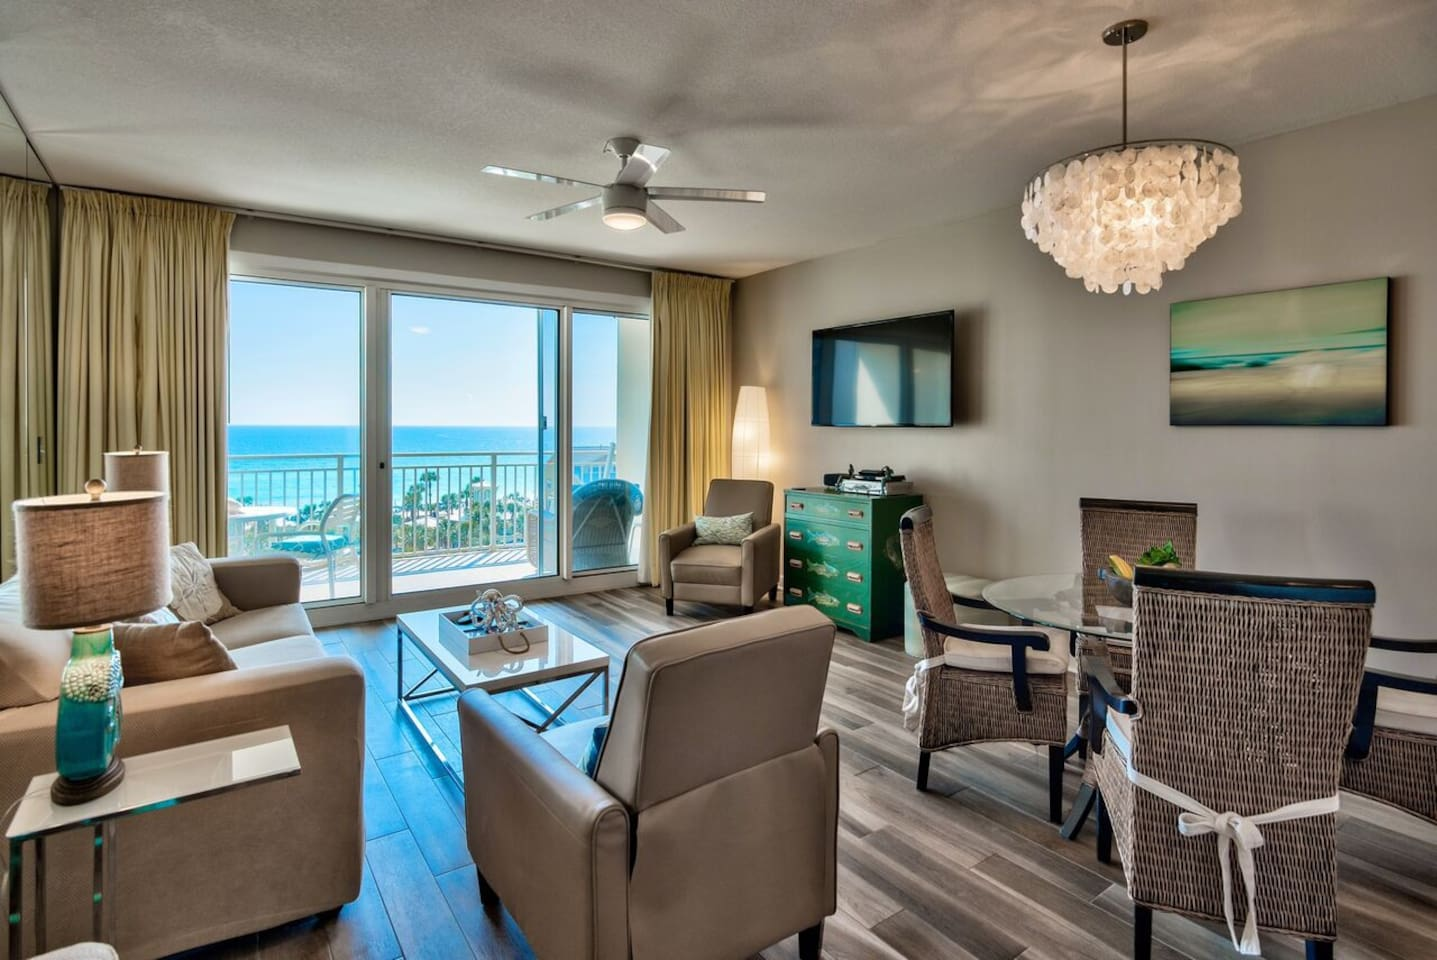 All the comforts of  home right next to the glistening turquoise waters of the Gulf.